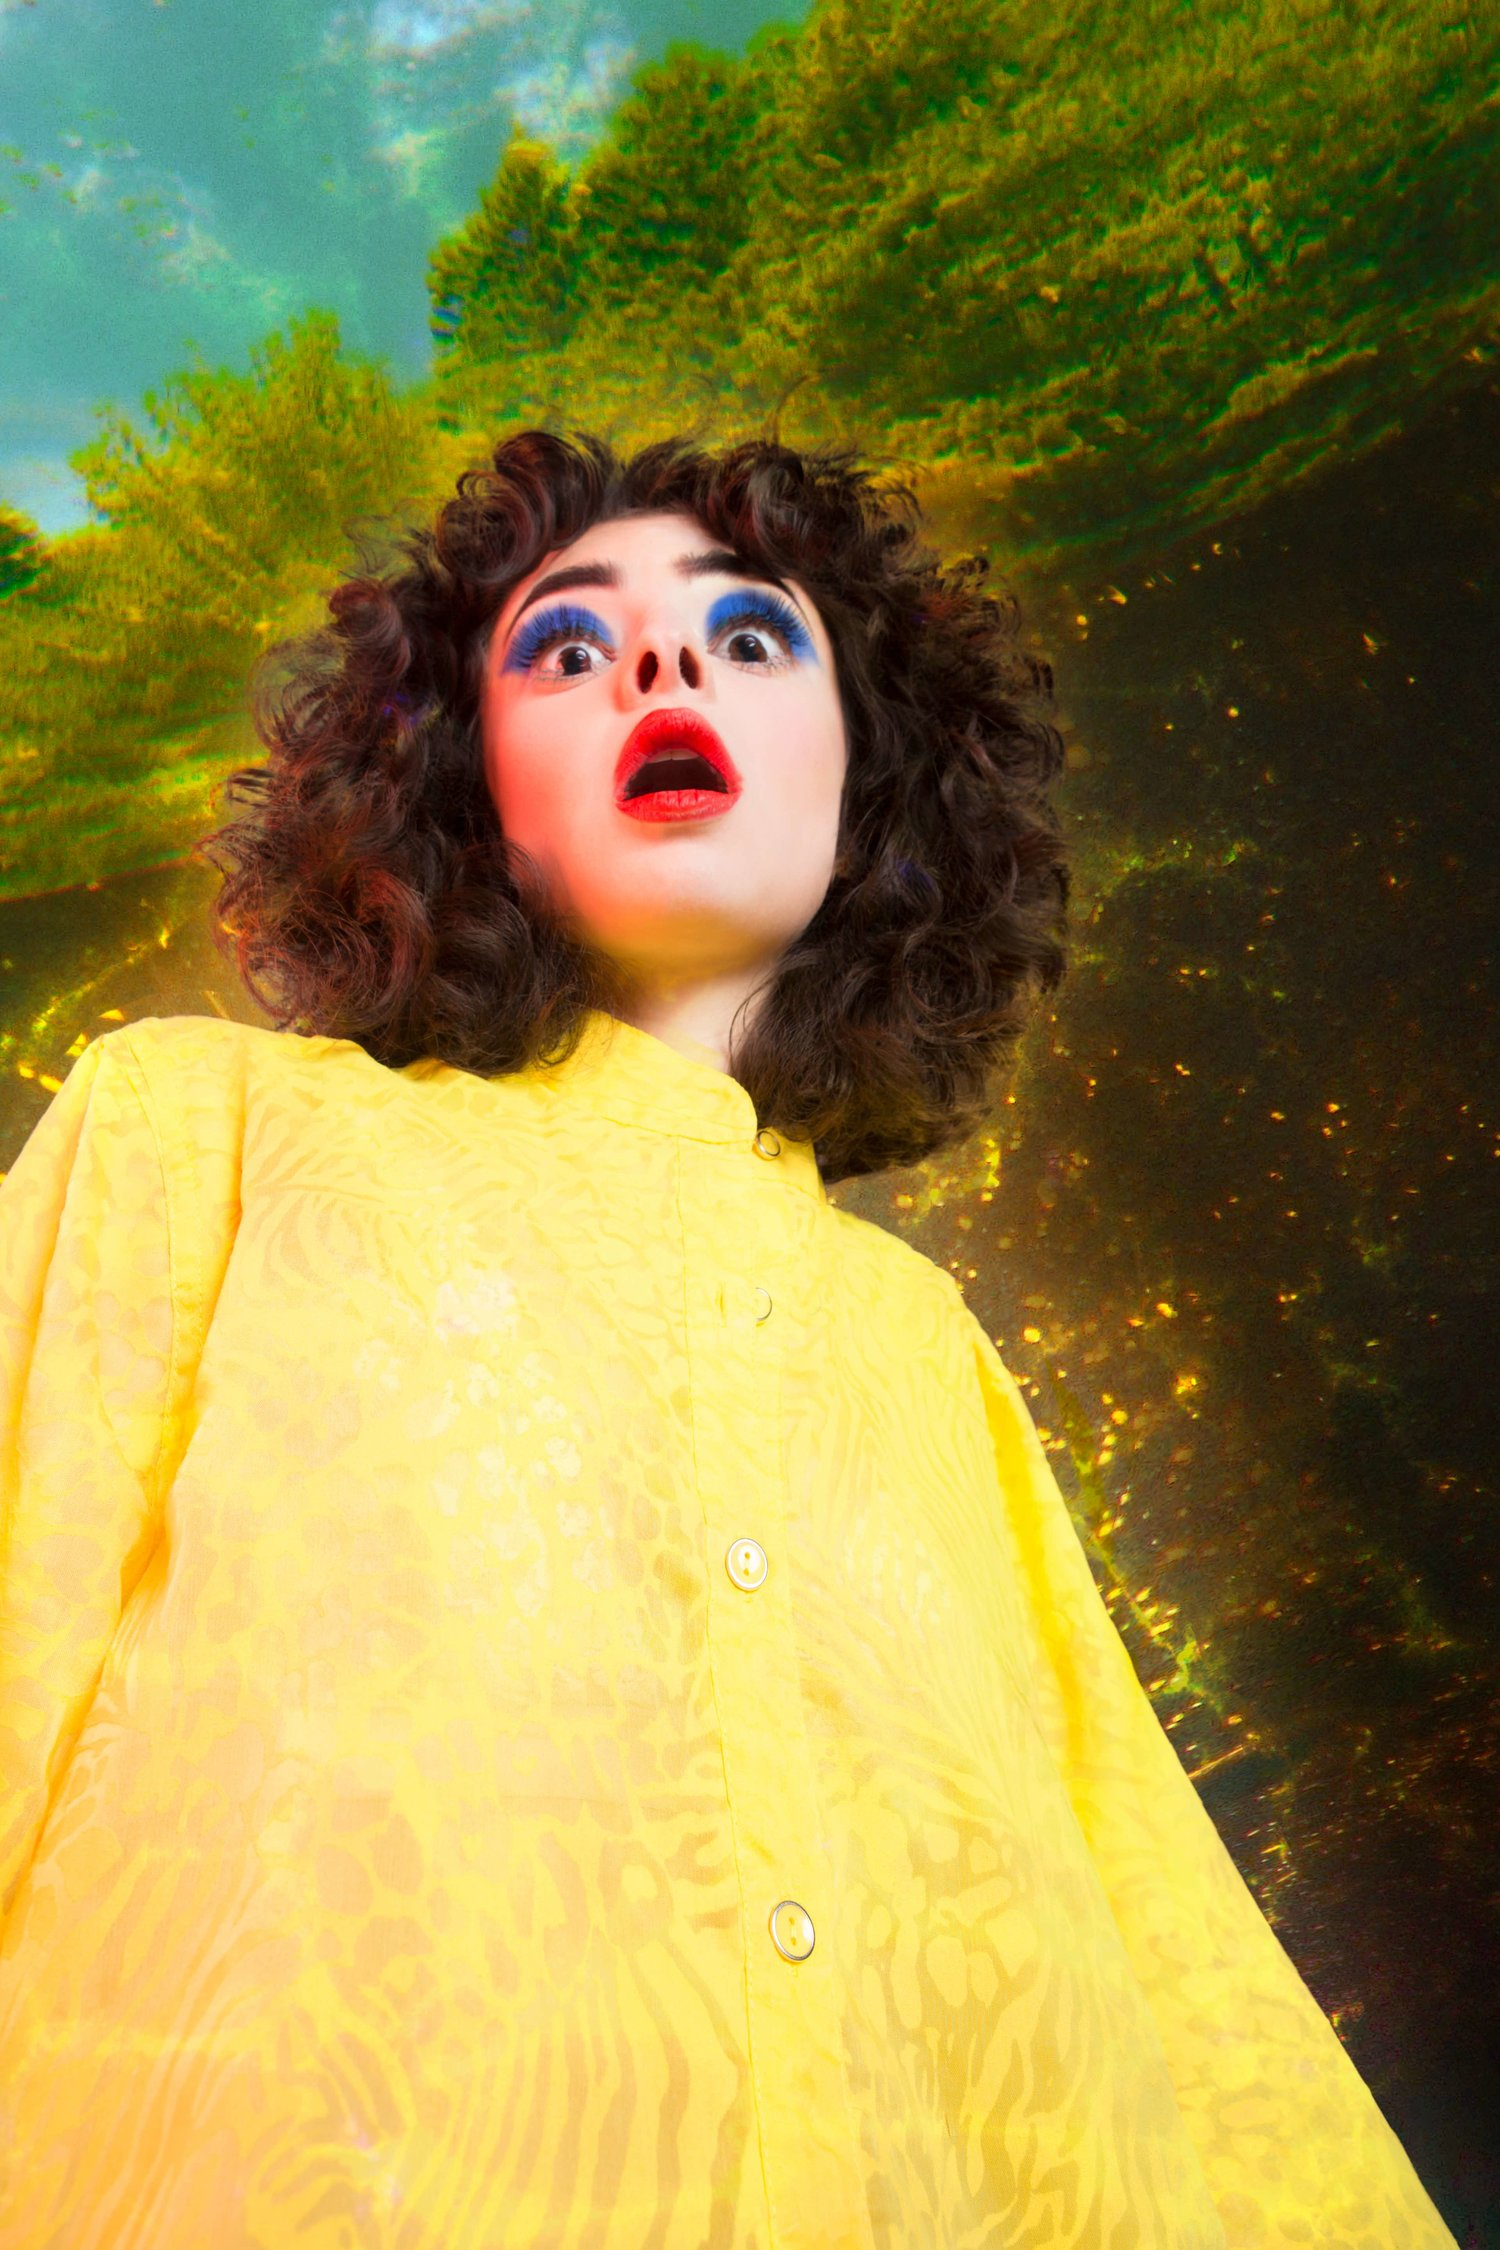 attack of the 50 foot woman yellow grow by commercial fashion artist photographer justin atkins.jpg.jpg.jpg